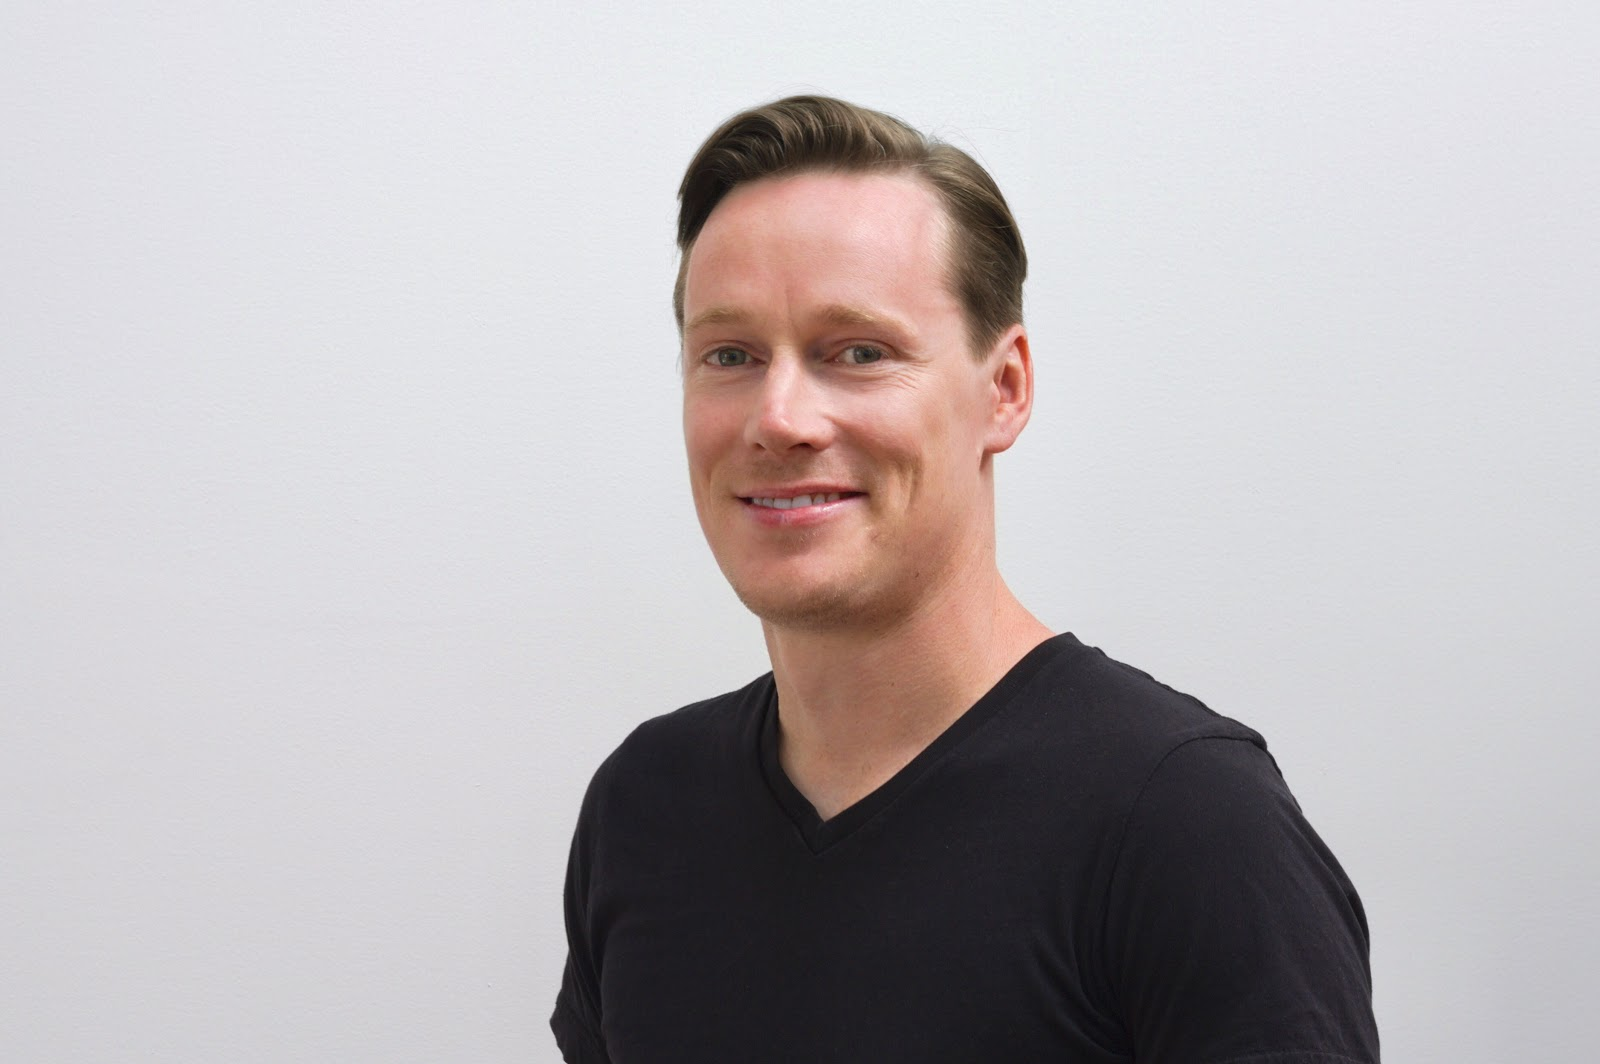 Perception Agency Founder, dental practice owner and consultant, Kaine Harling